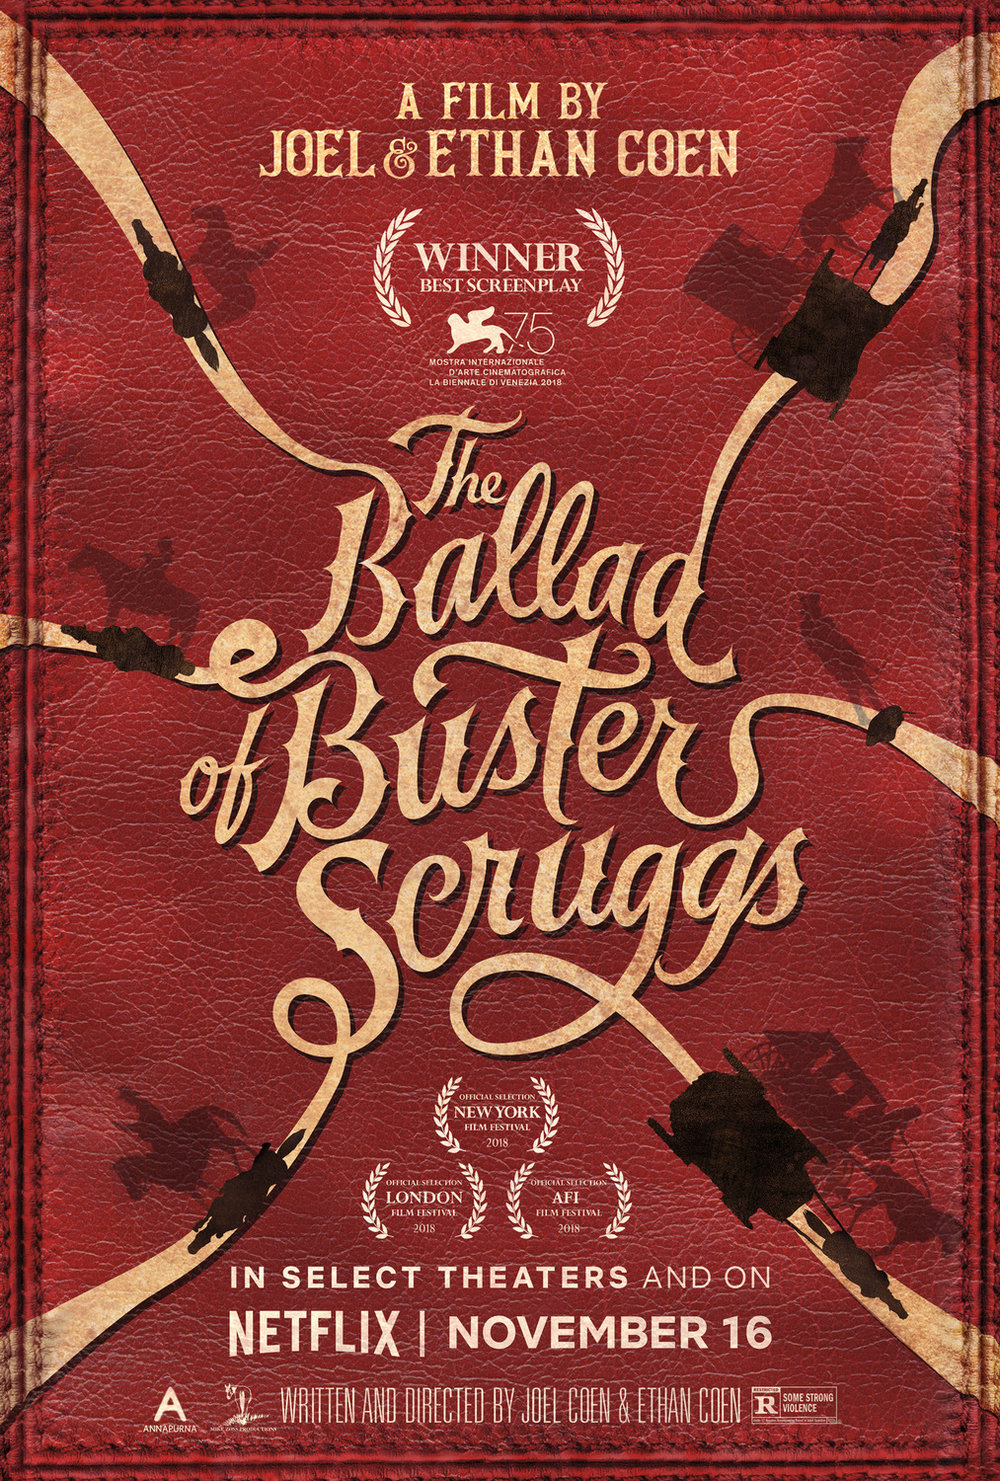 12. The Ballad of Buster Scruggs - dir. The Coen Brothers